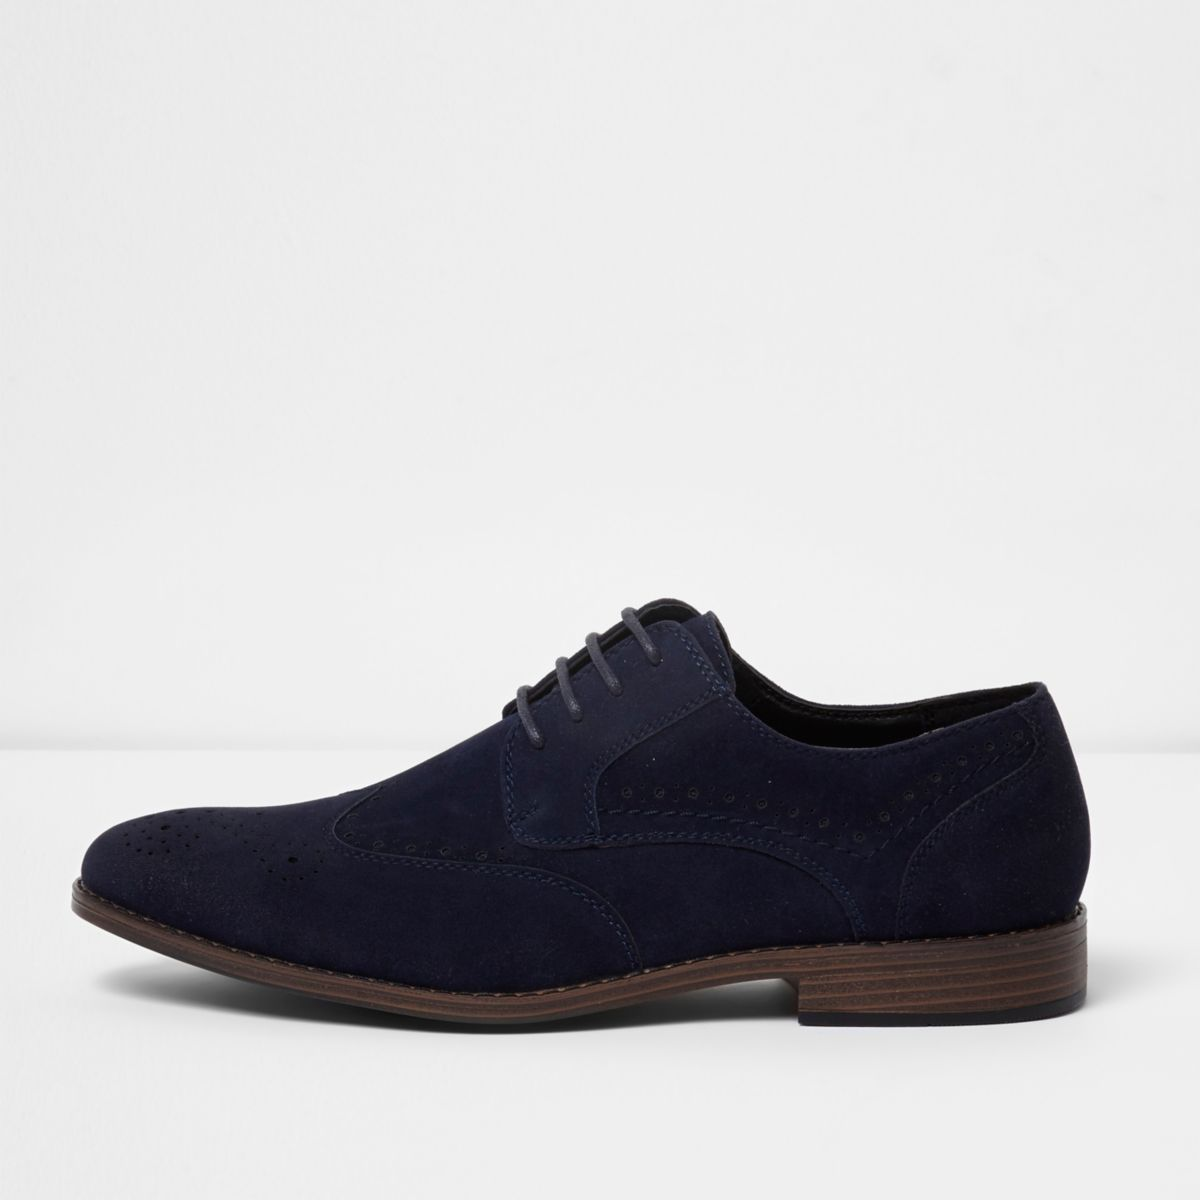 Navy Mens Brogues Sale: Save Up to 40% Off! Shop cheswick-stand.tk's huge selection of Navy Brogues for Men - Over 10 styles available. FREE Shipping & Exchanges, and a % price guarantee!